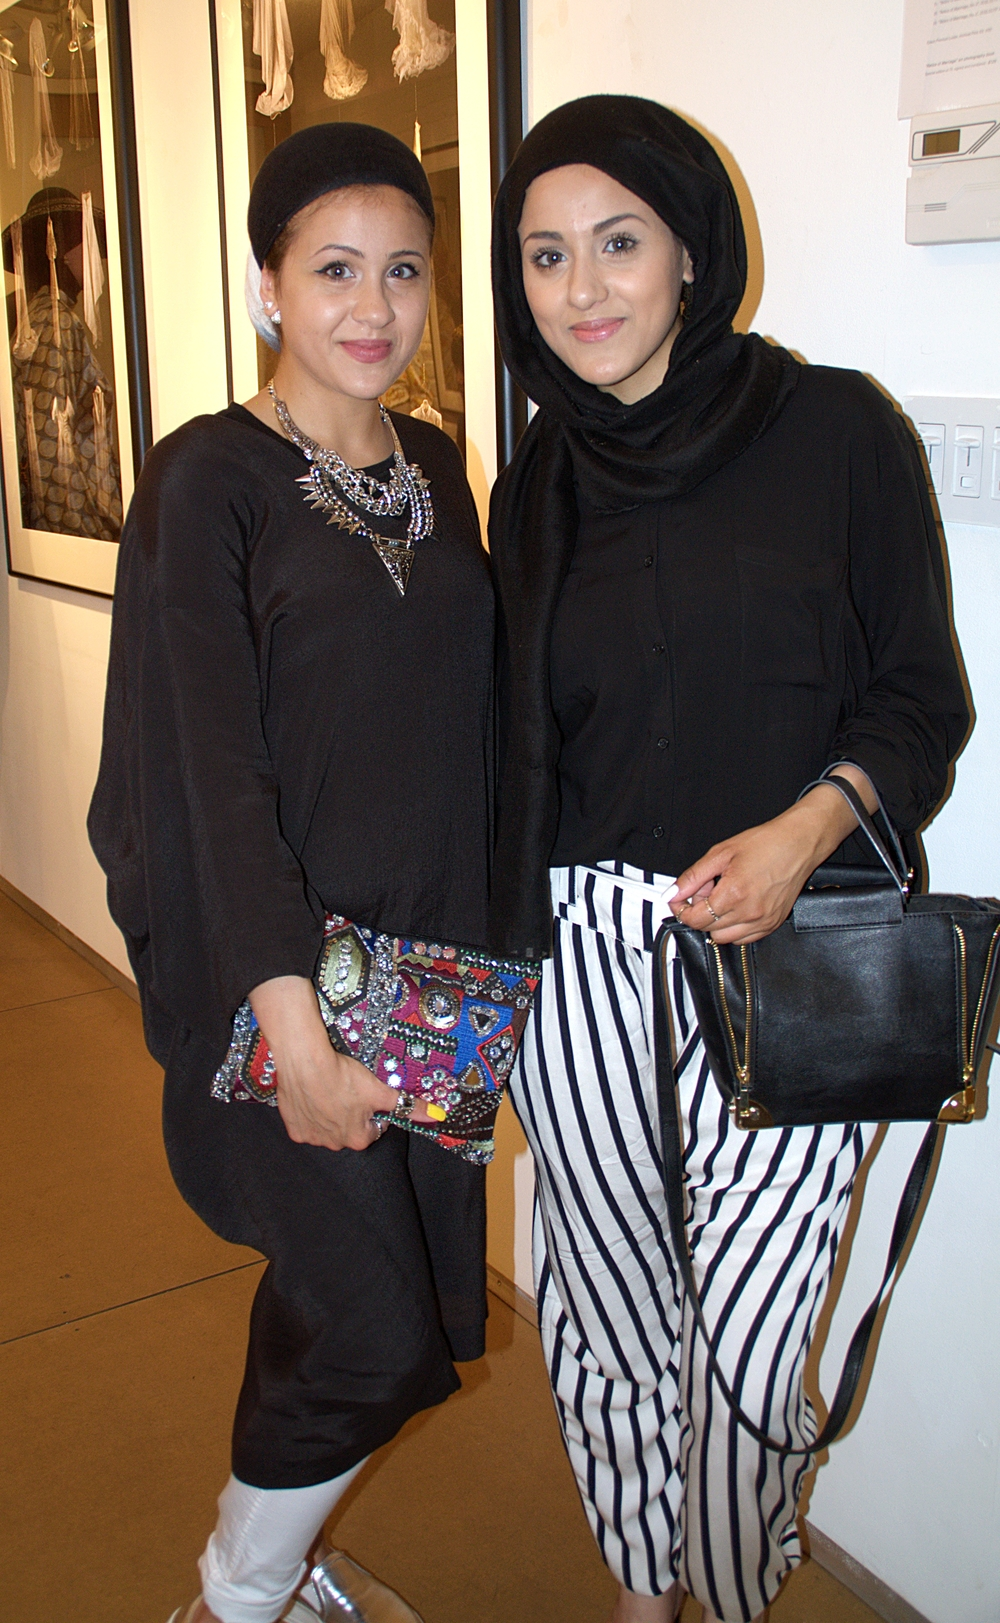 Amazingly Stylish Bloggers Roxi and Diane(@official_xeenah) came to hang out and view the collection.